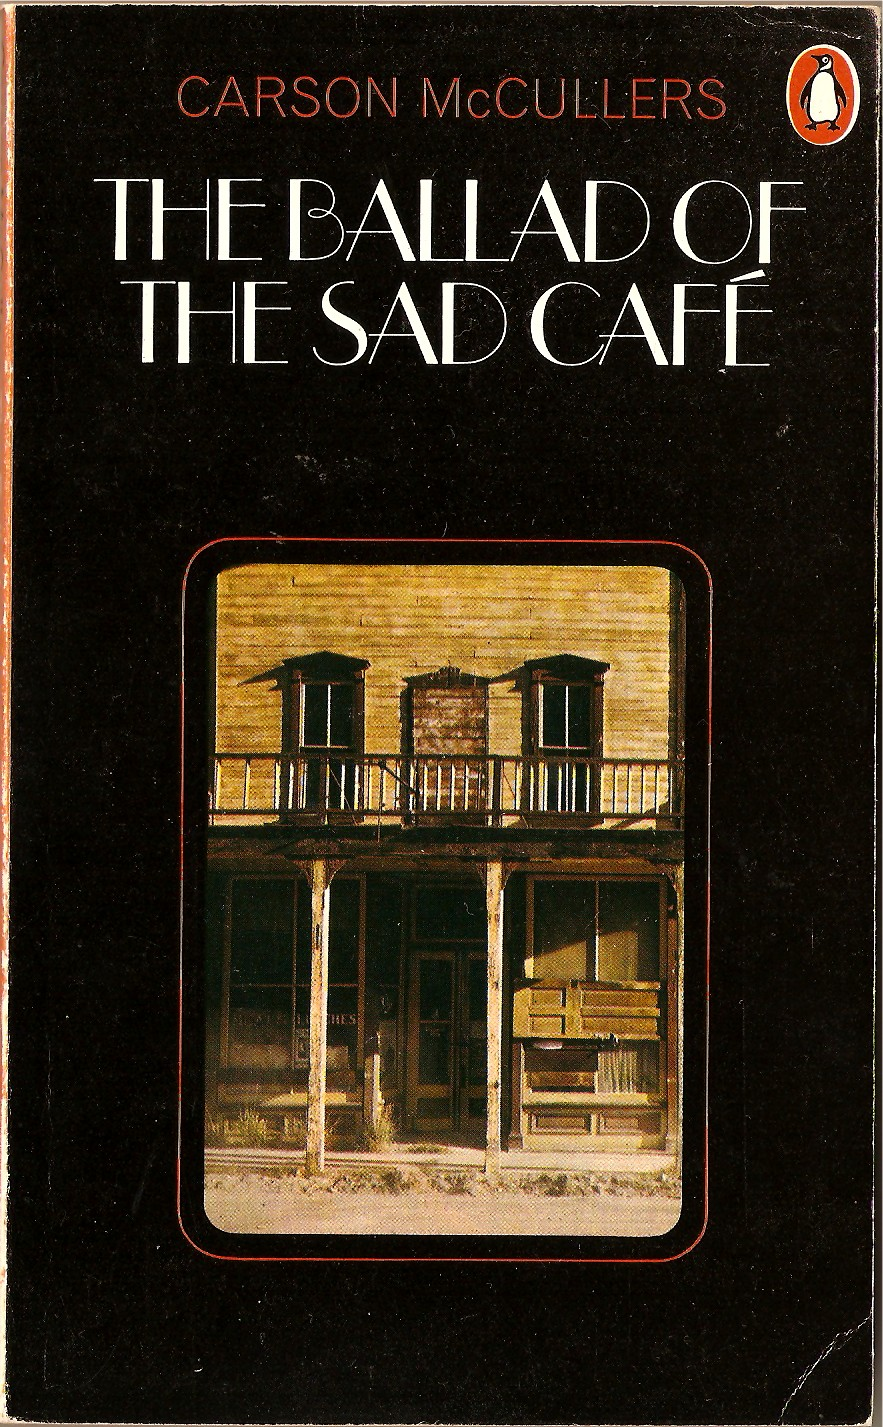 an analysis of the nature of love in the ballad of the sad cafe a southern gothic by carson mcculler Essay analysis of the ballad of the sad cafe by carson mccullers - analysis of the ballad of the sad cafe by carson mccullers the as a southern-gothic.